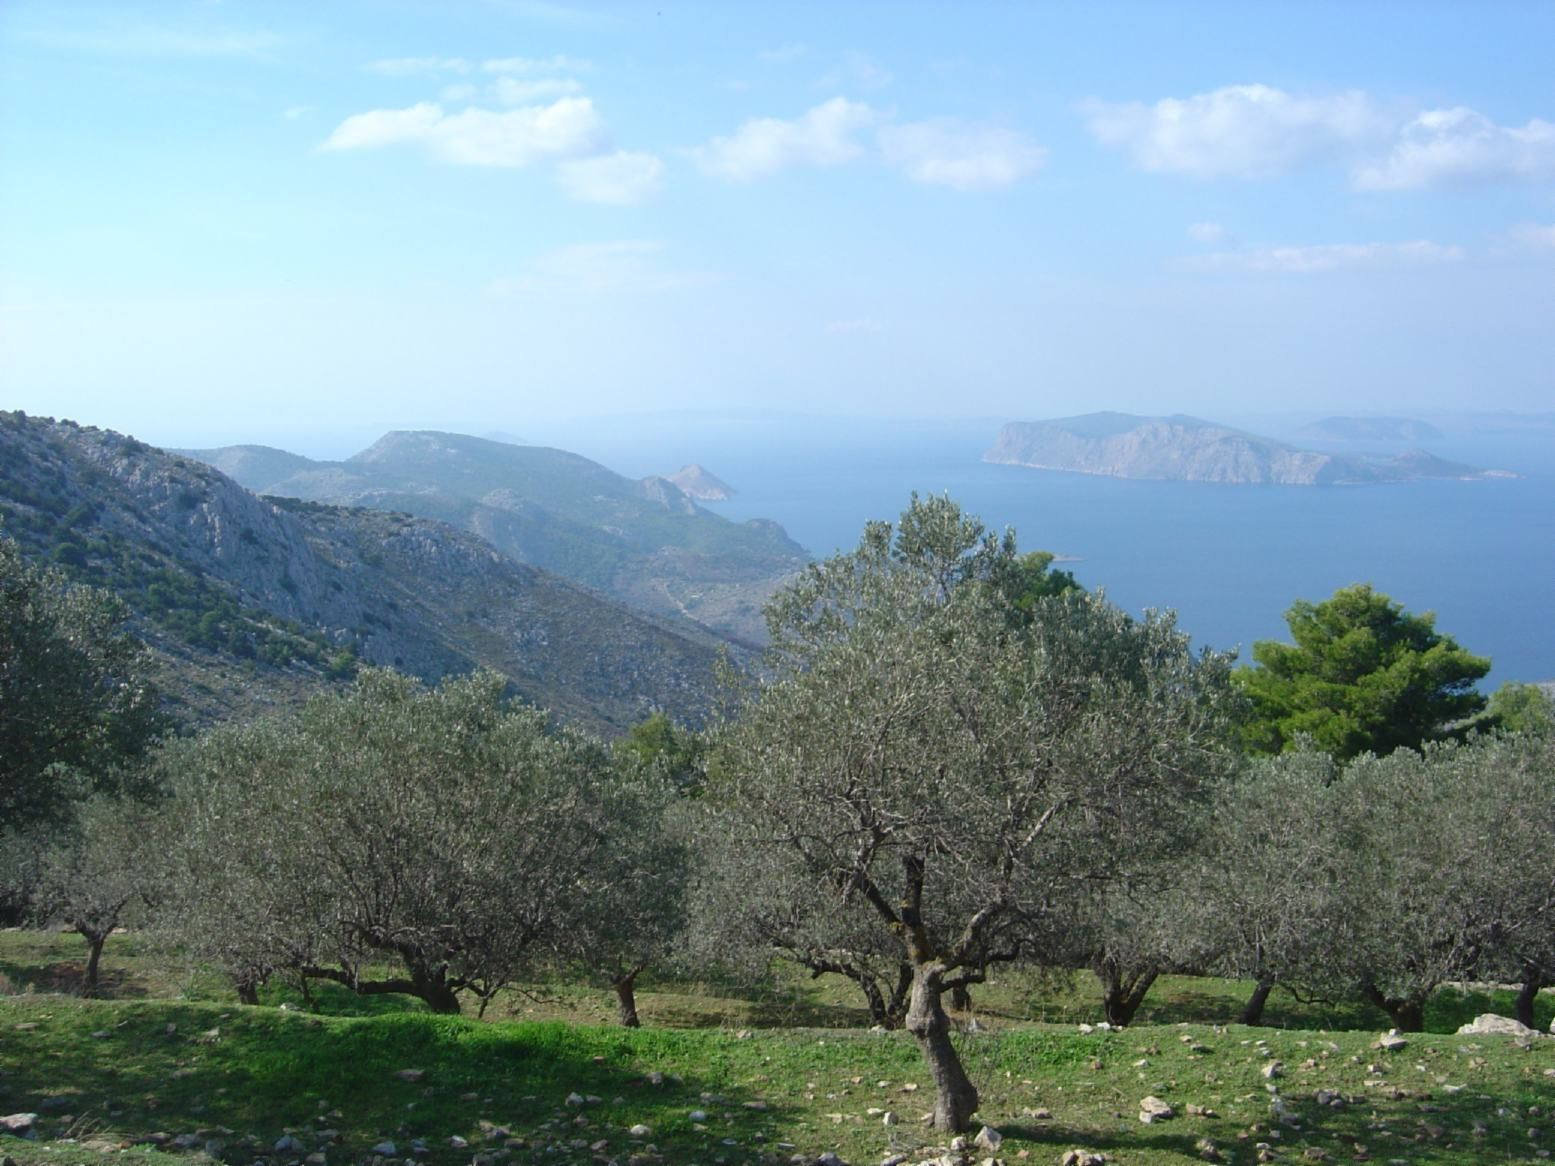 View from Monstery, Hydra Island, Greece